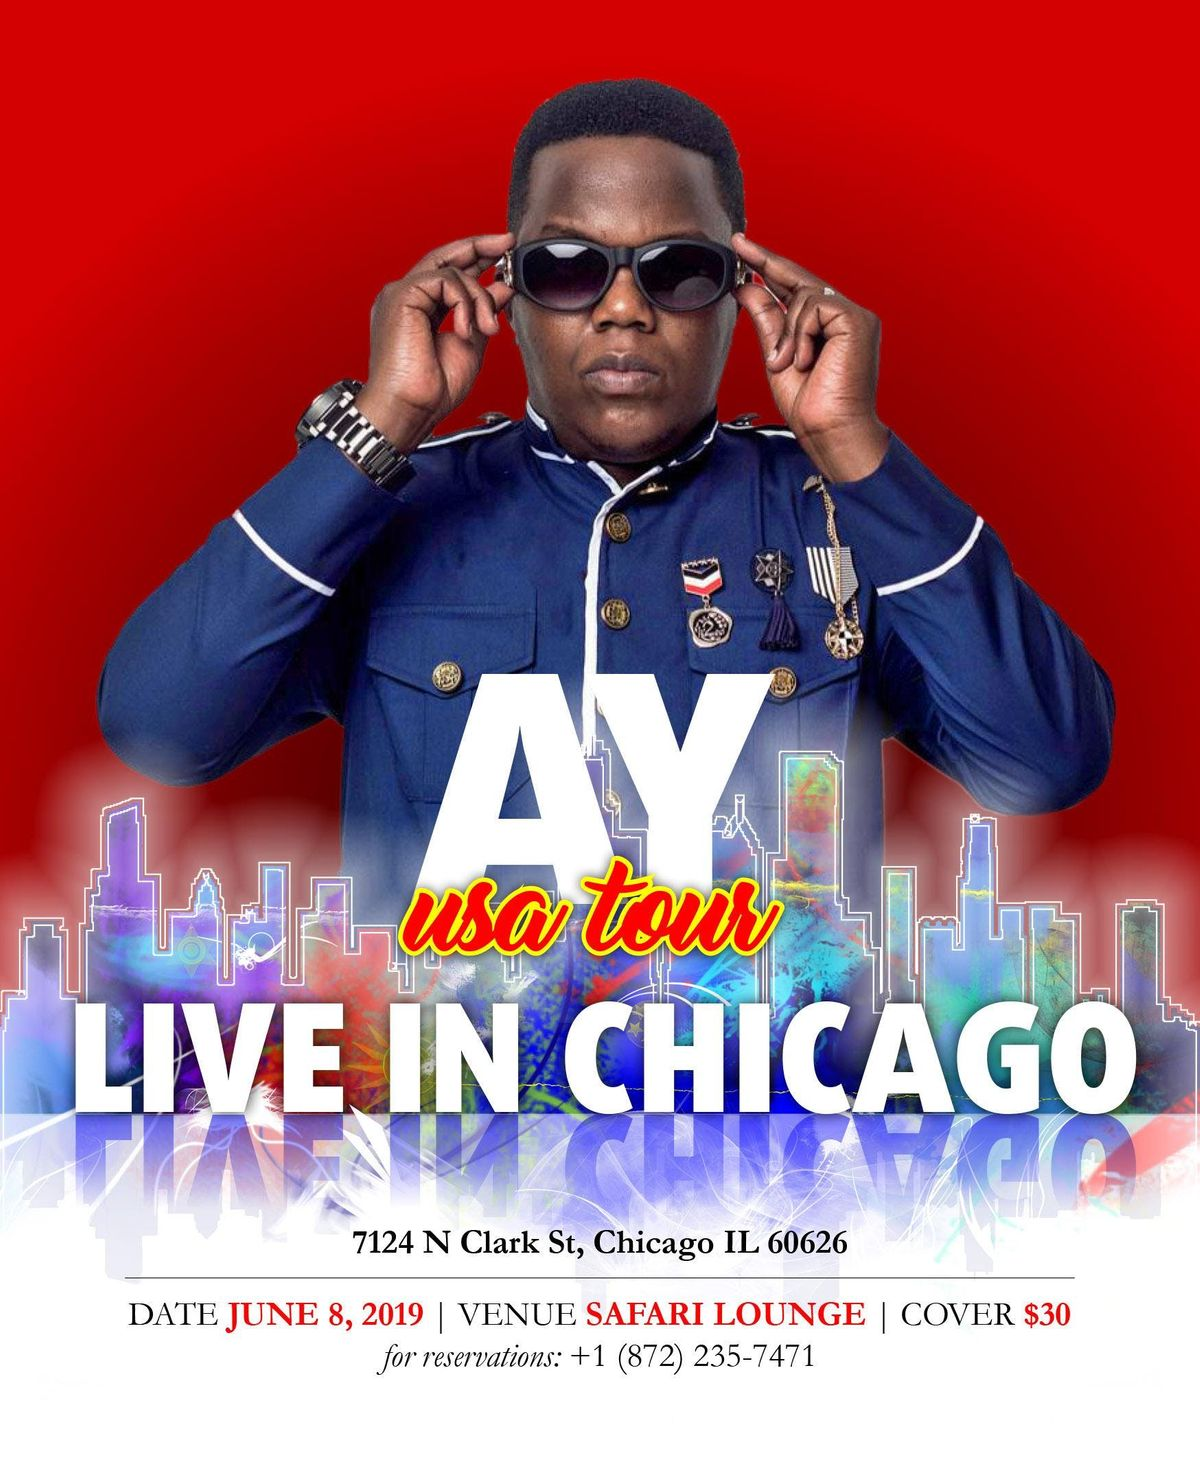 AY USA TOUR